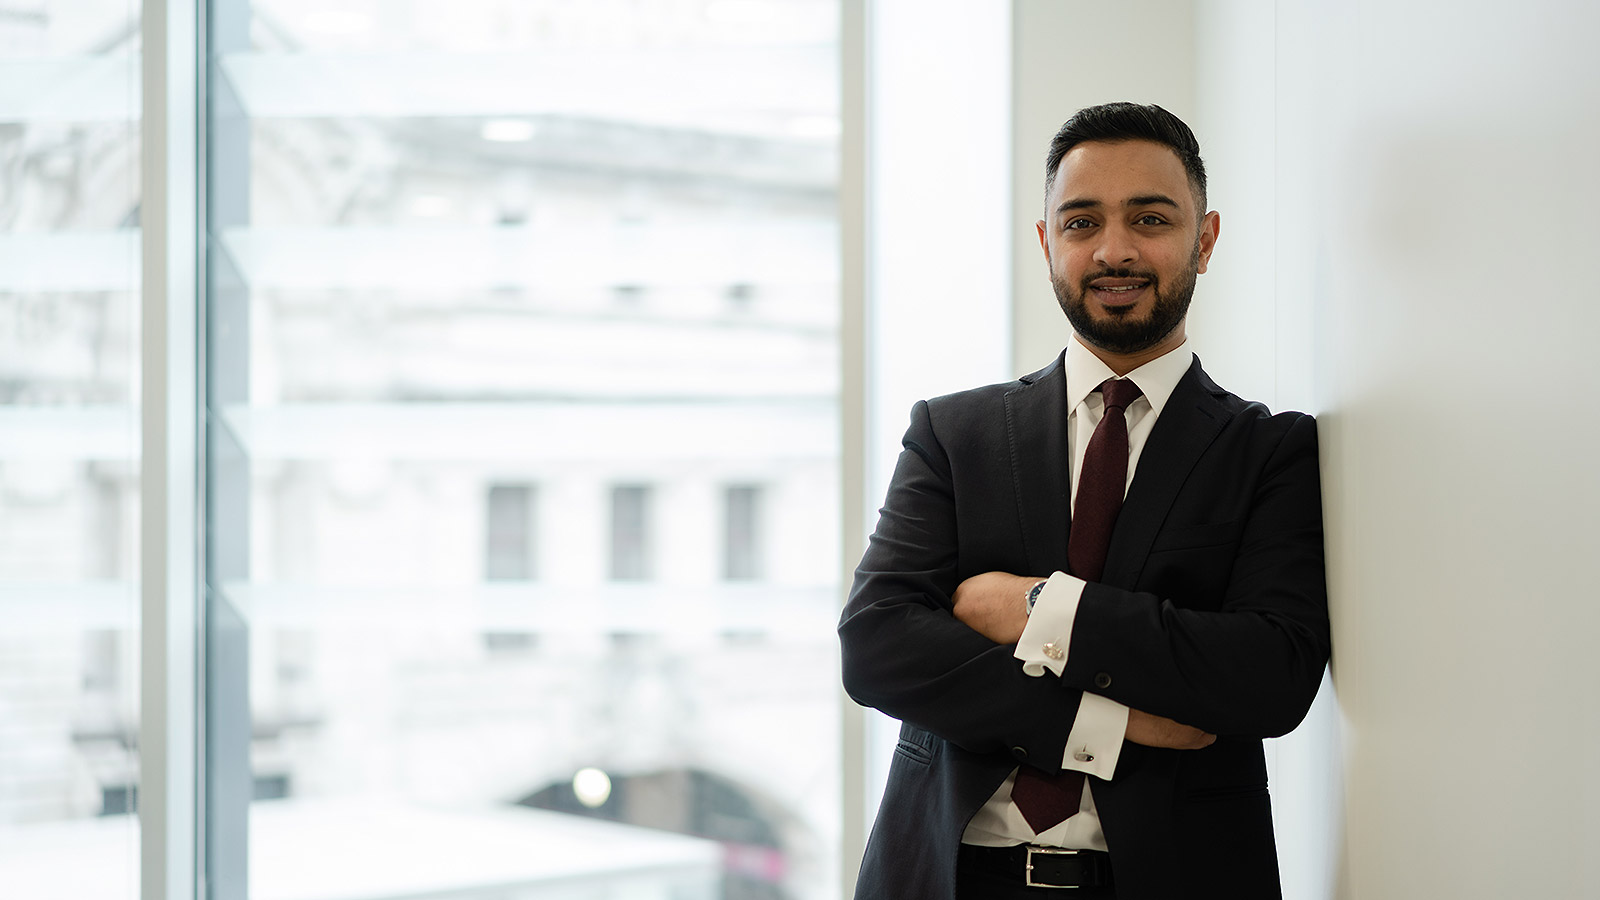 Augusta Business man dressed in suit head of originations and lawyer Mohsin Patel standing and posing for photo with a smile in bright modern London office room next to wide and floor to ceiling windows